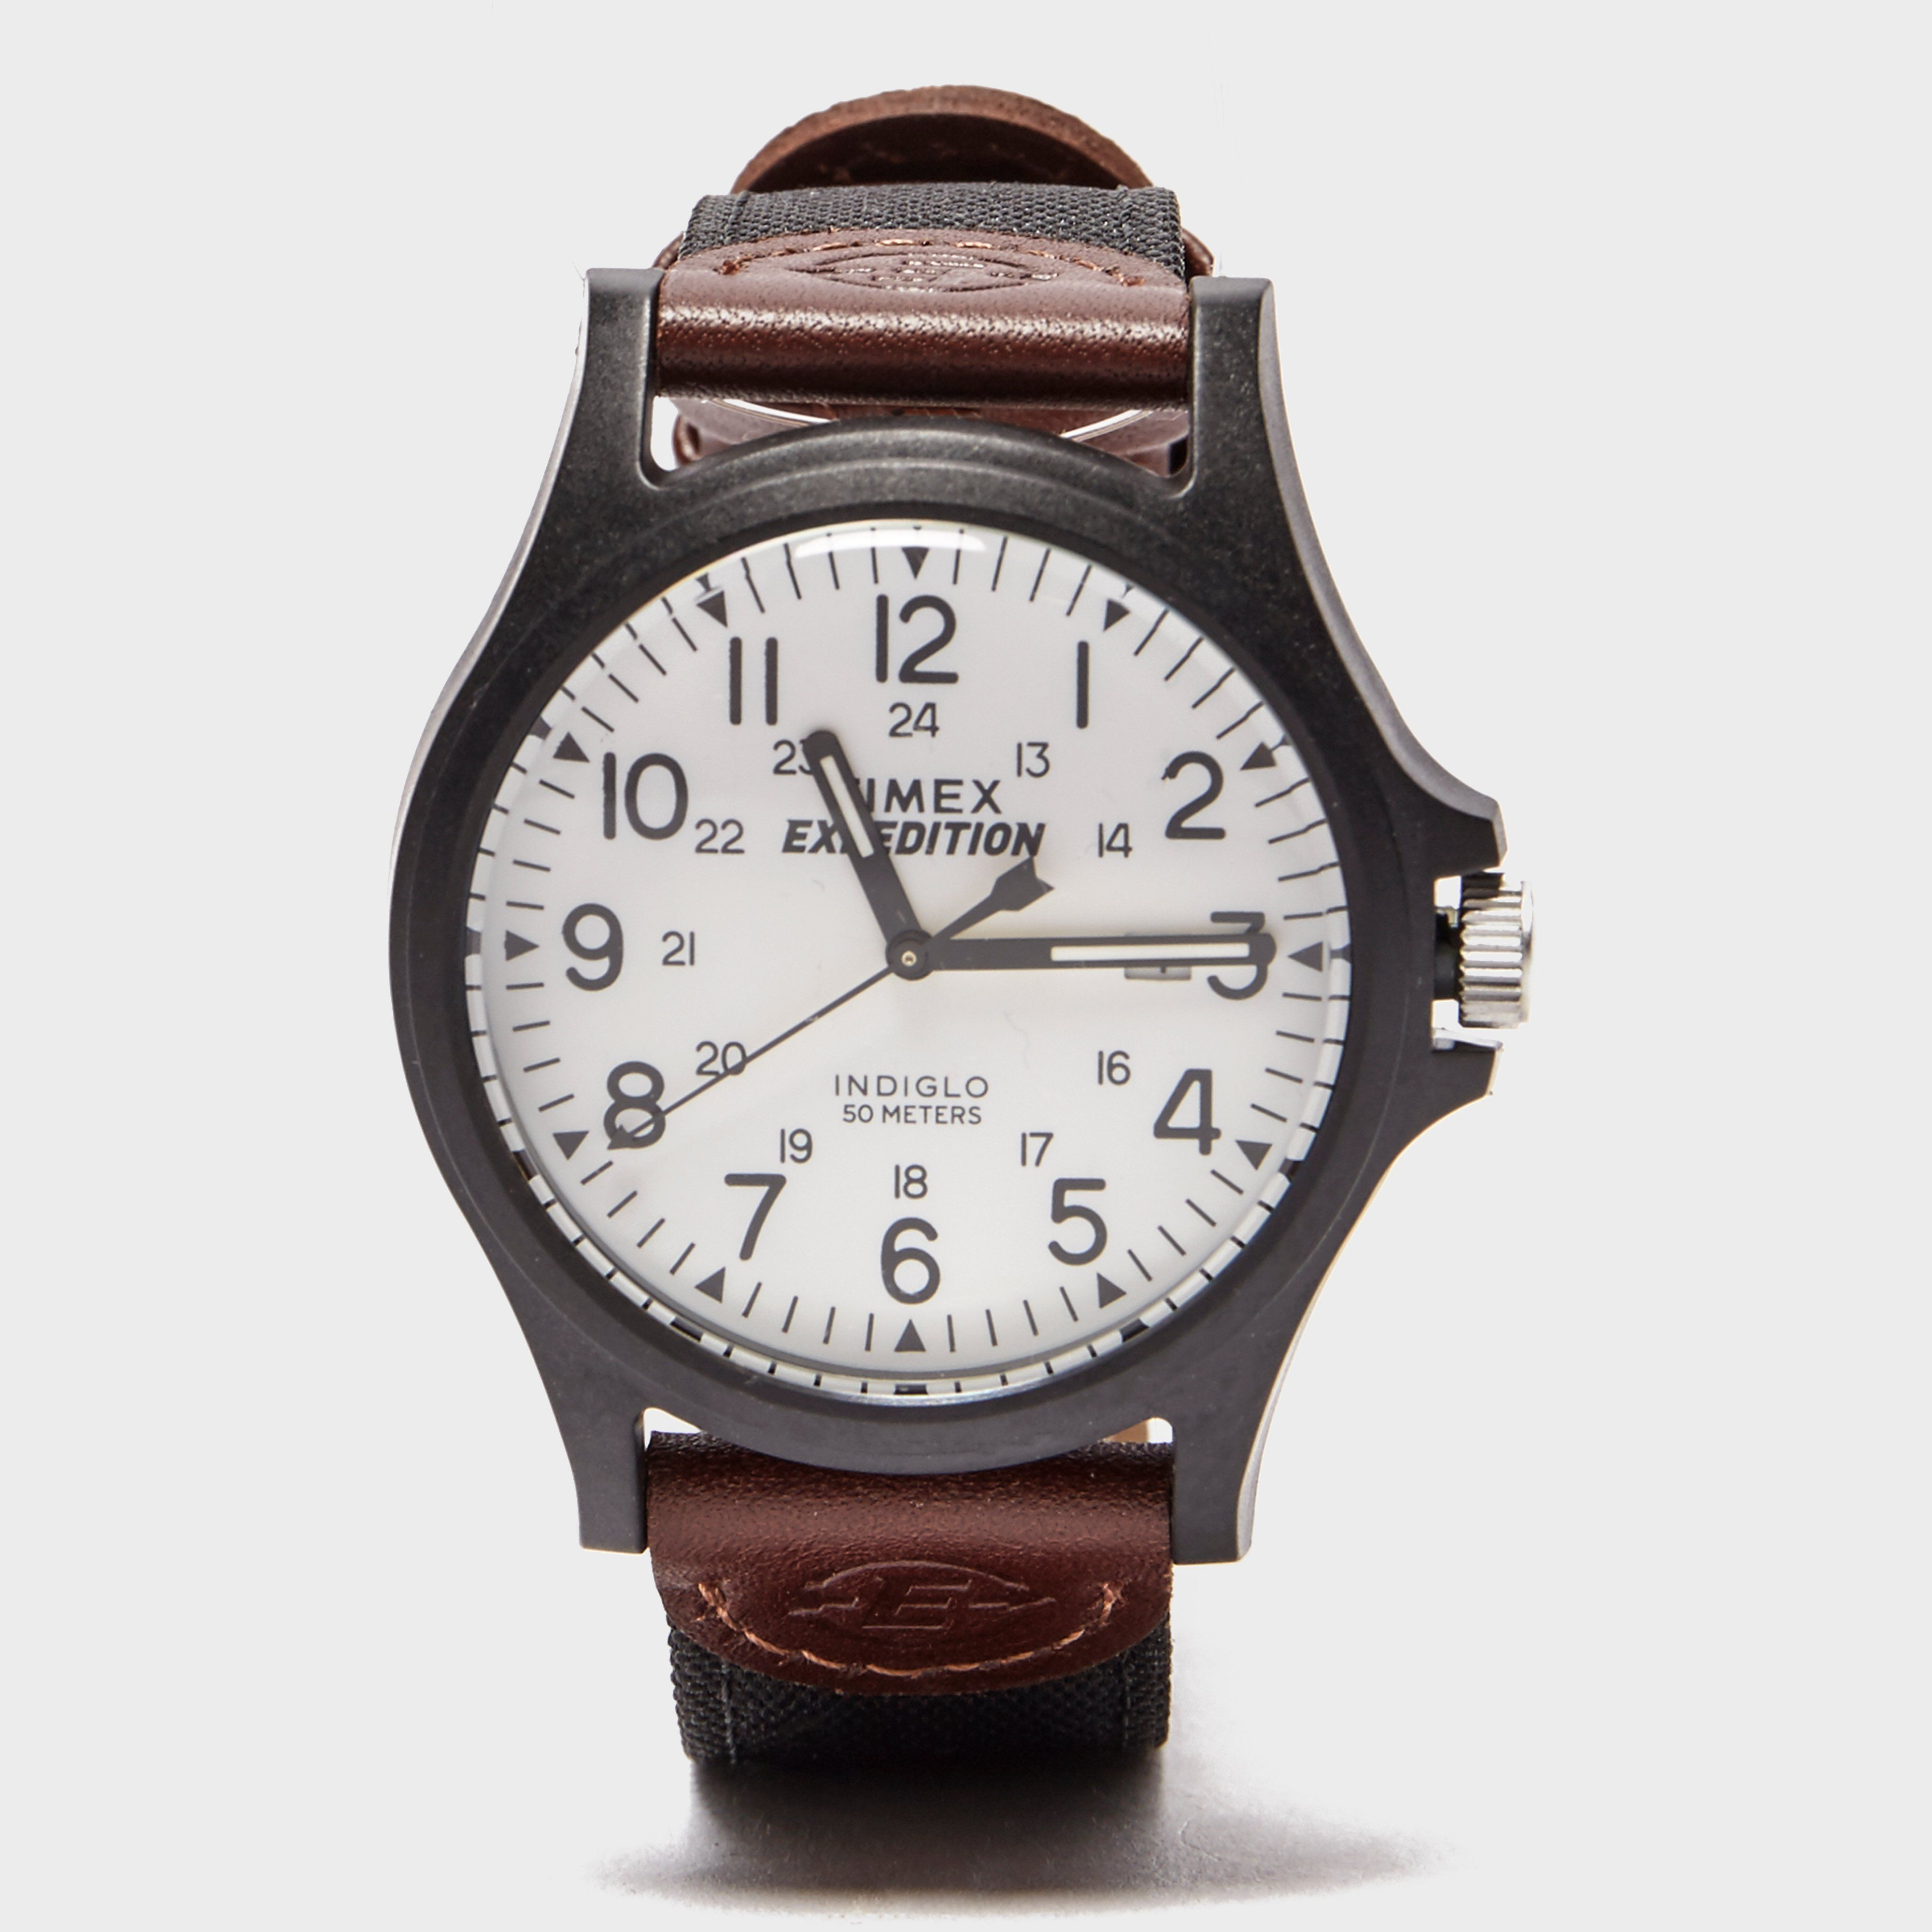 TIMEX Expedition Acadia Watch